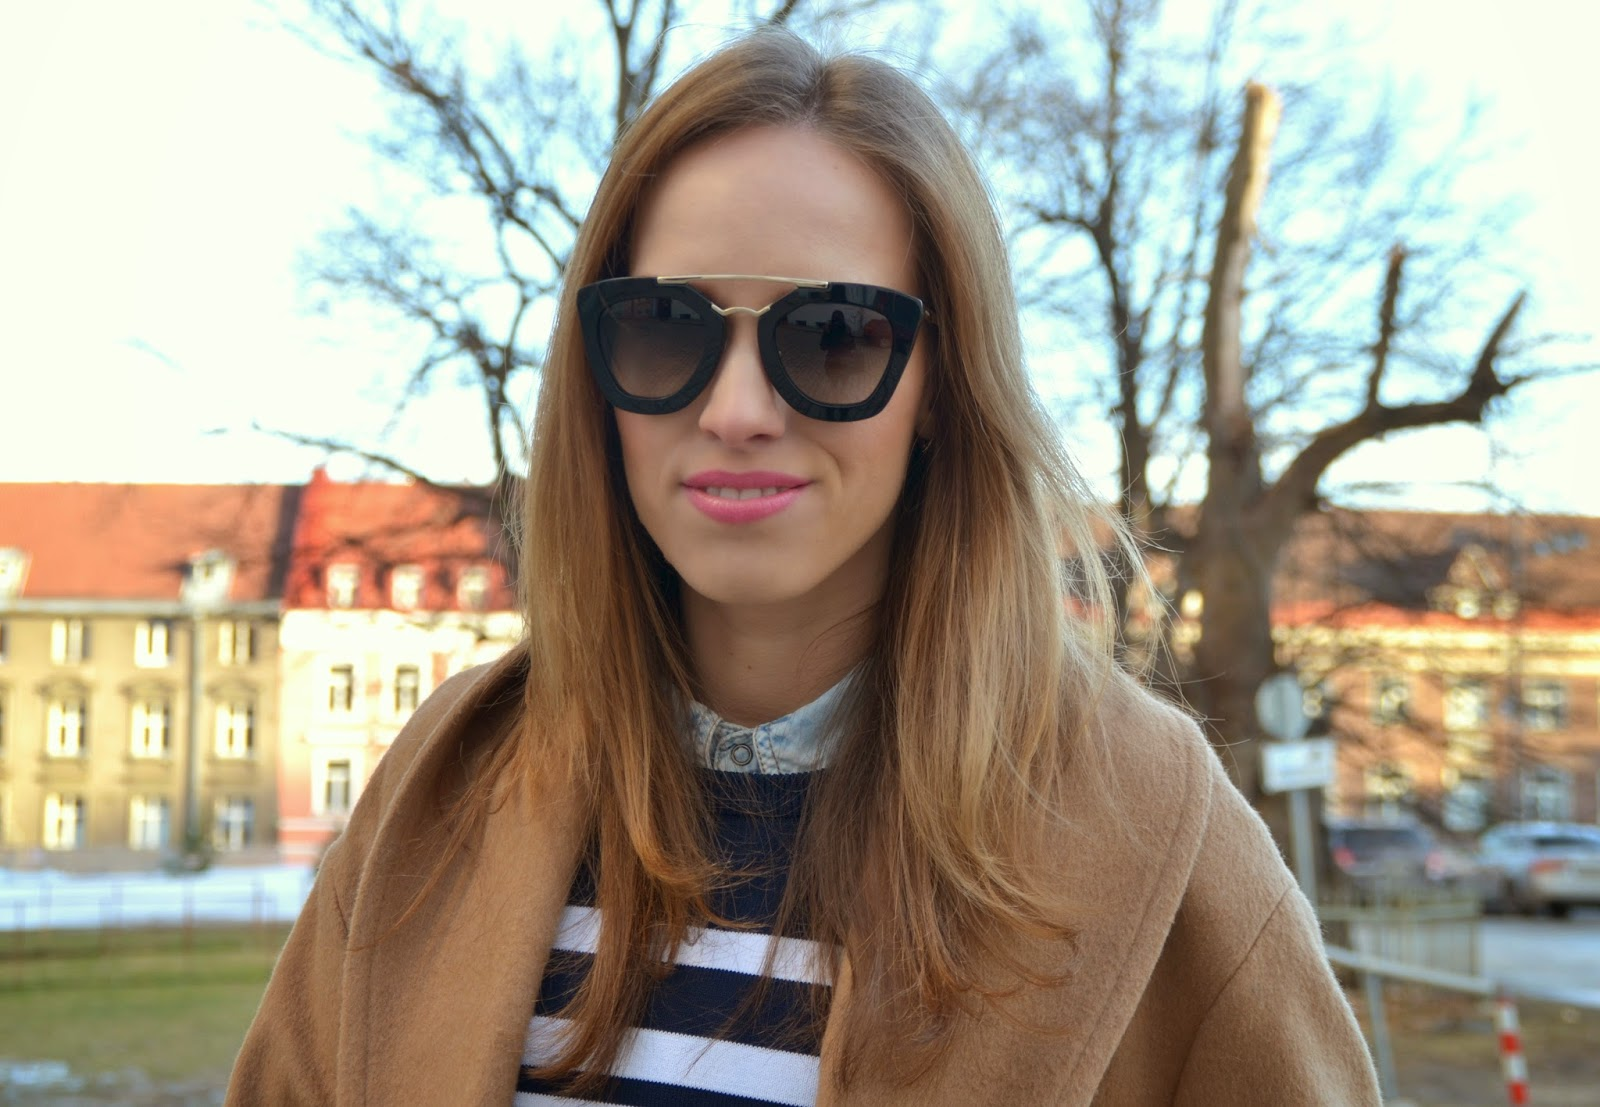 prada-black-gold-cinema-sunglasses-camel-coat kristjaana mere